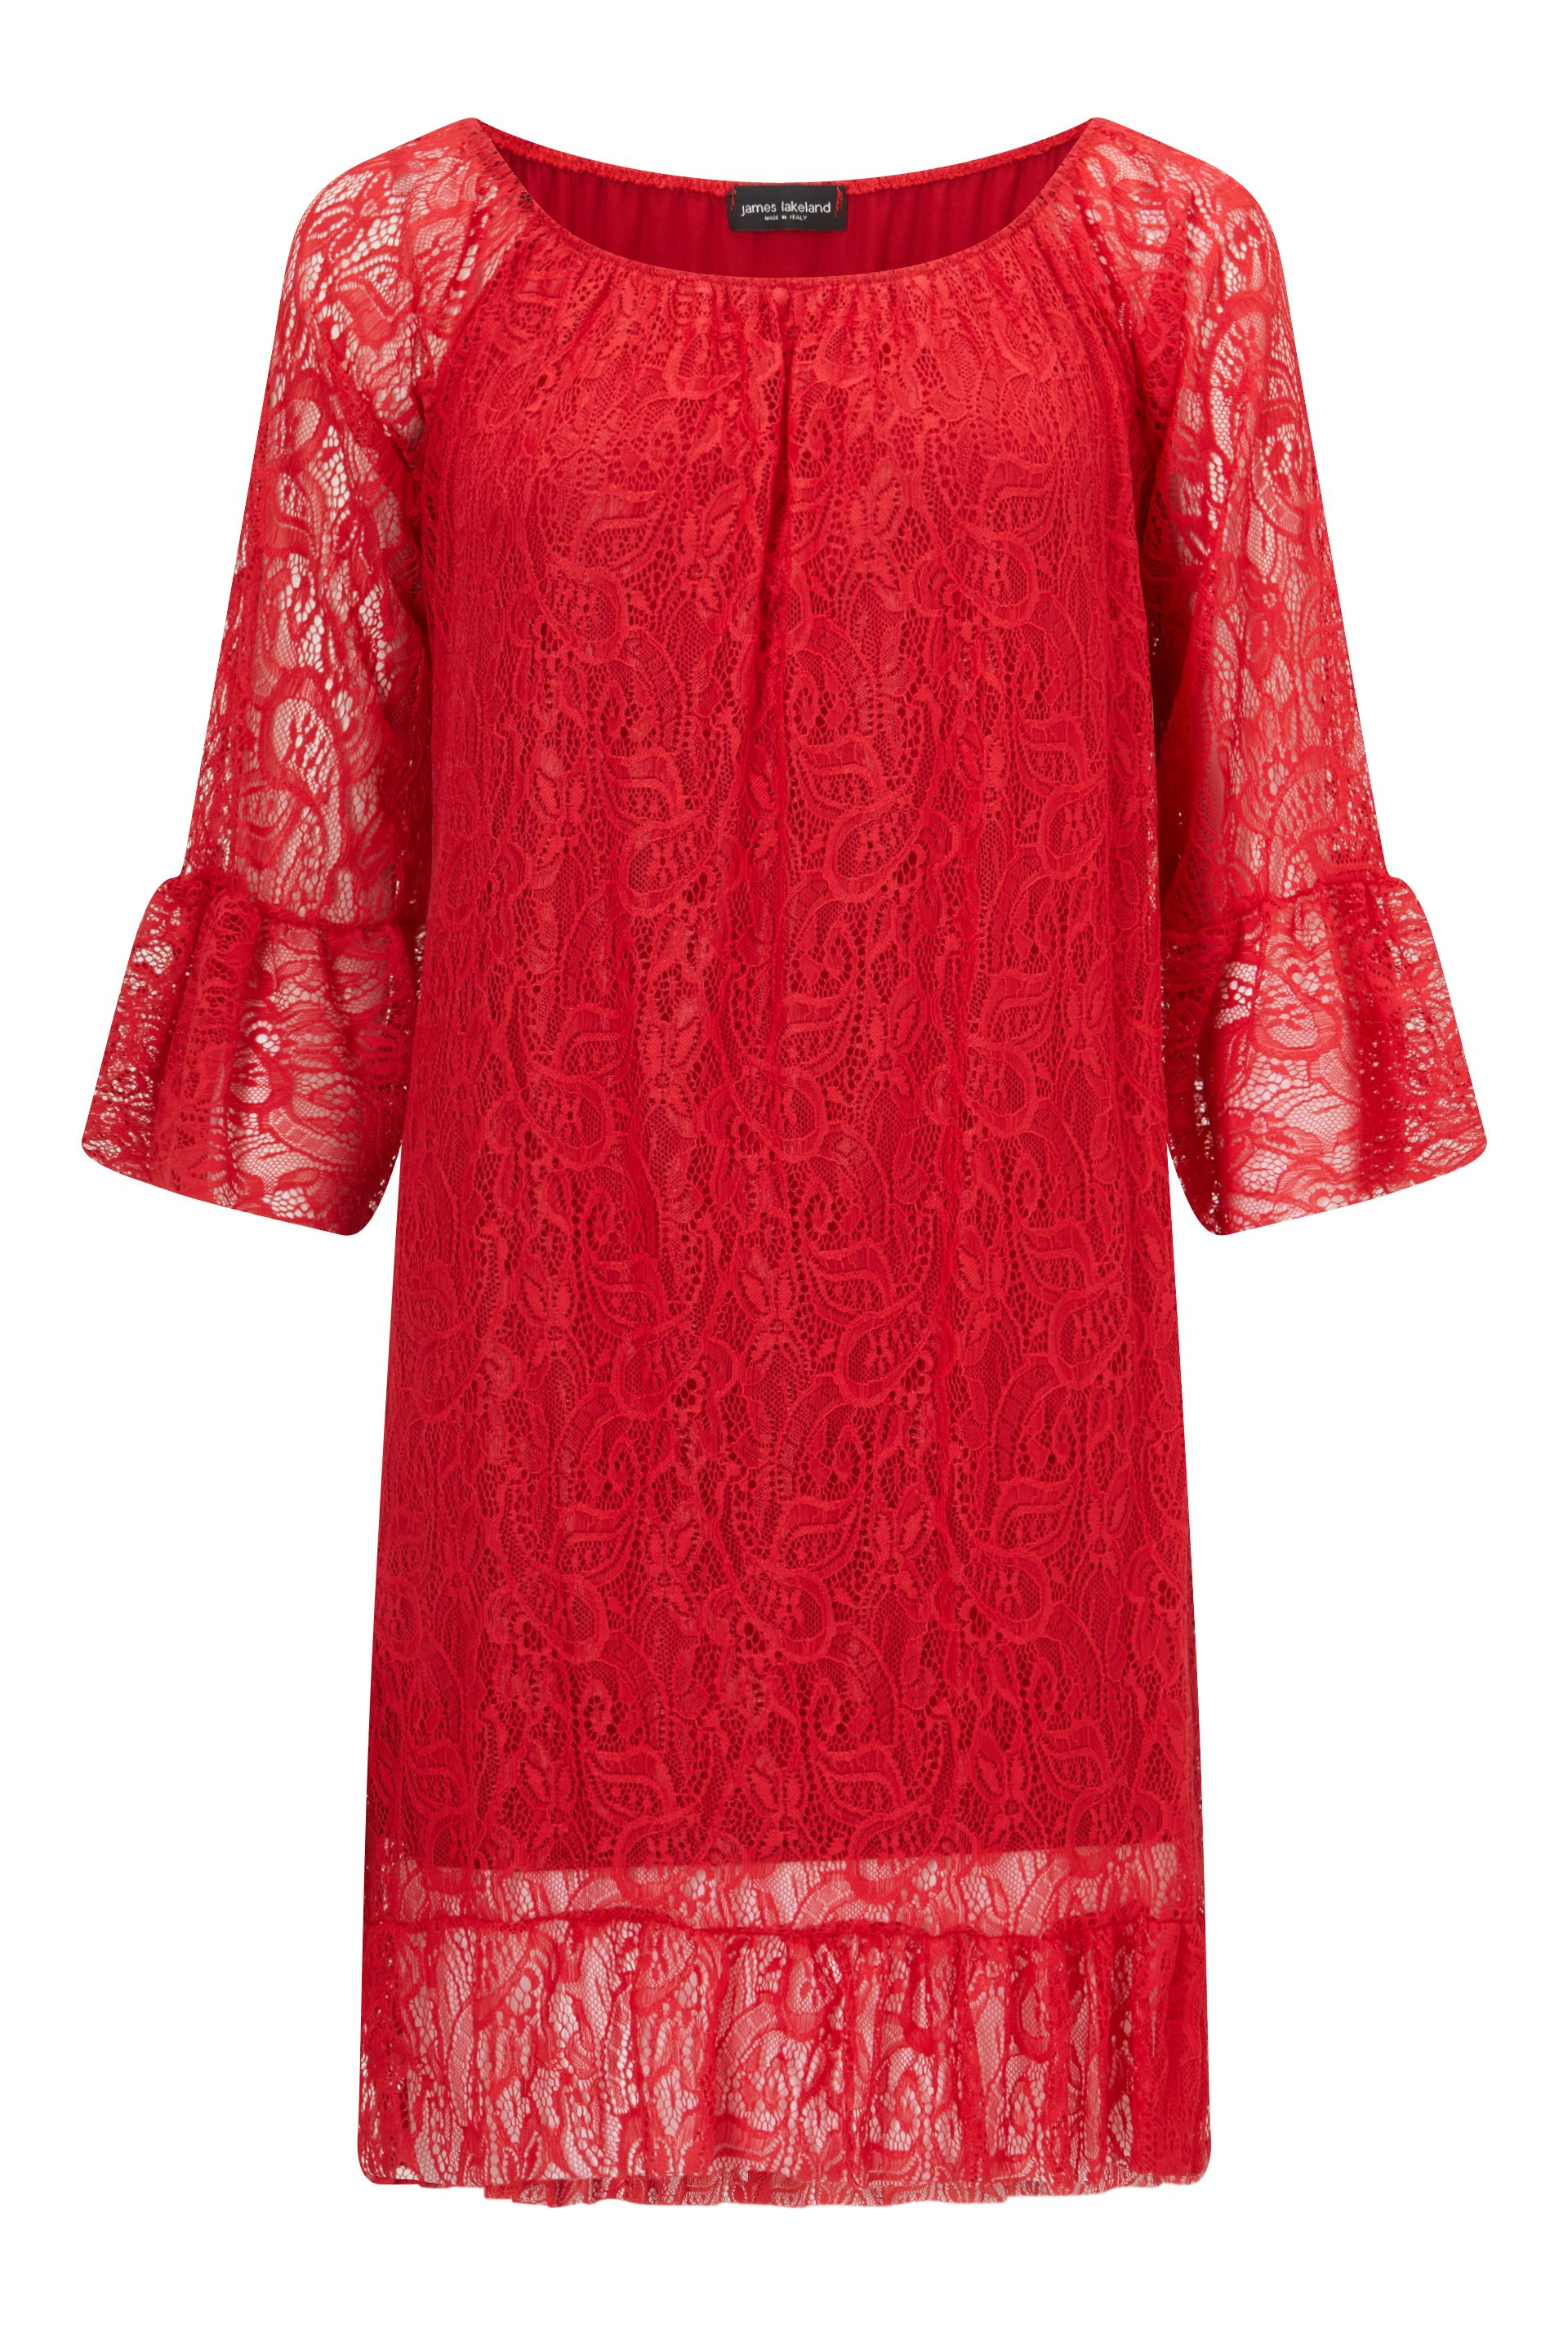 James Lakeland Lace Dress, Red